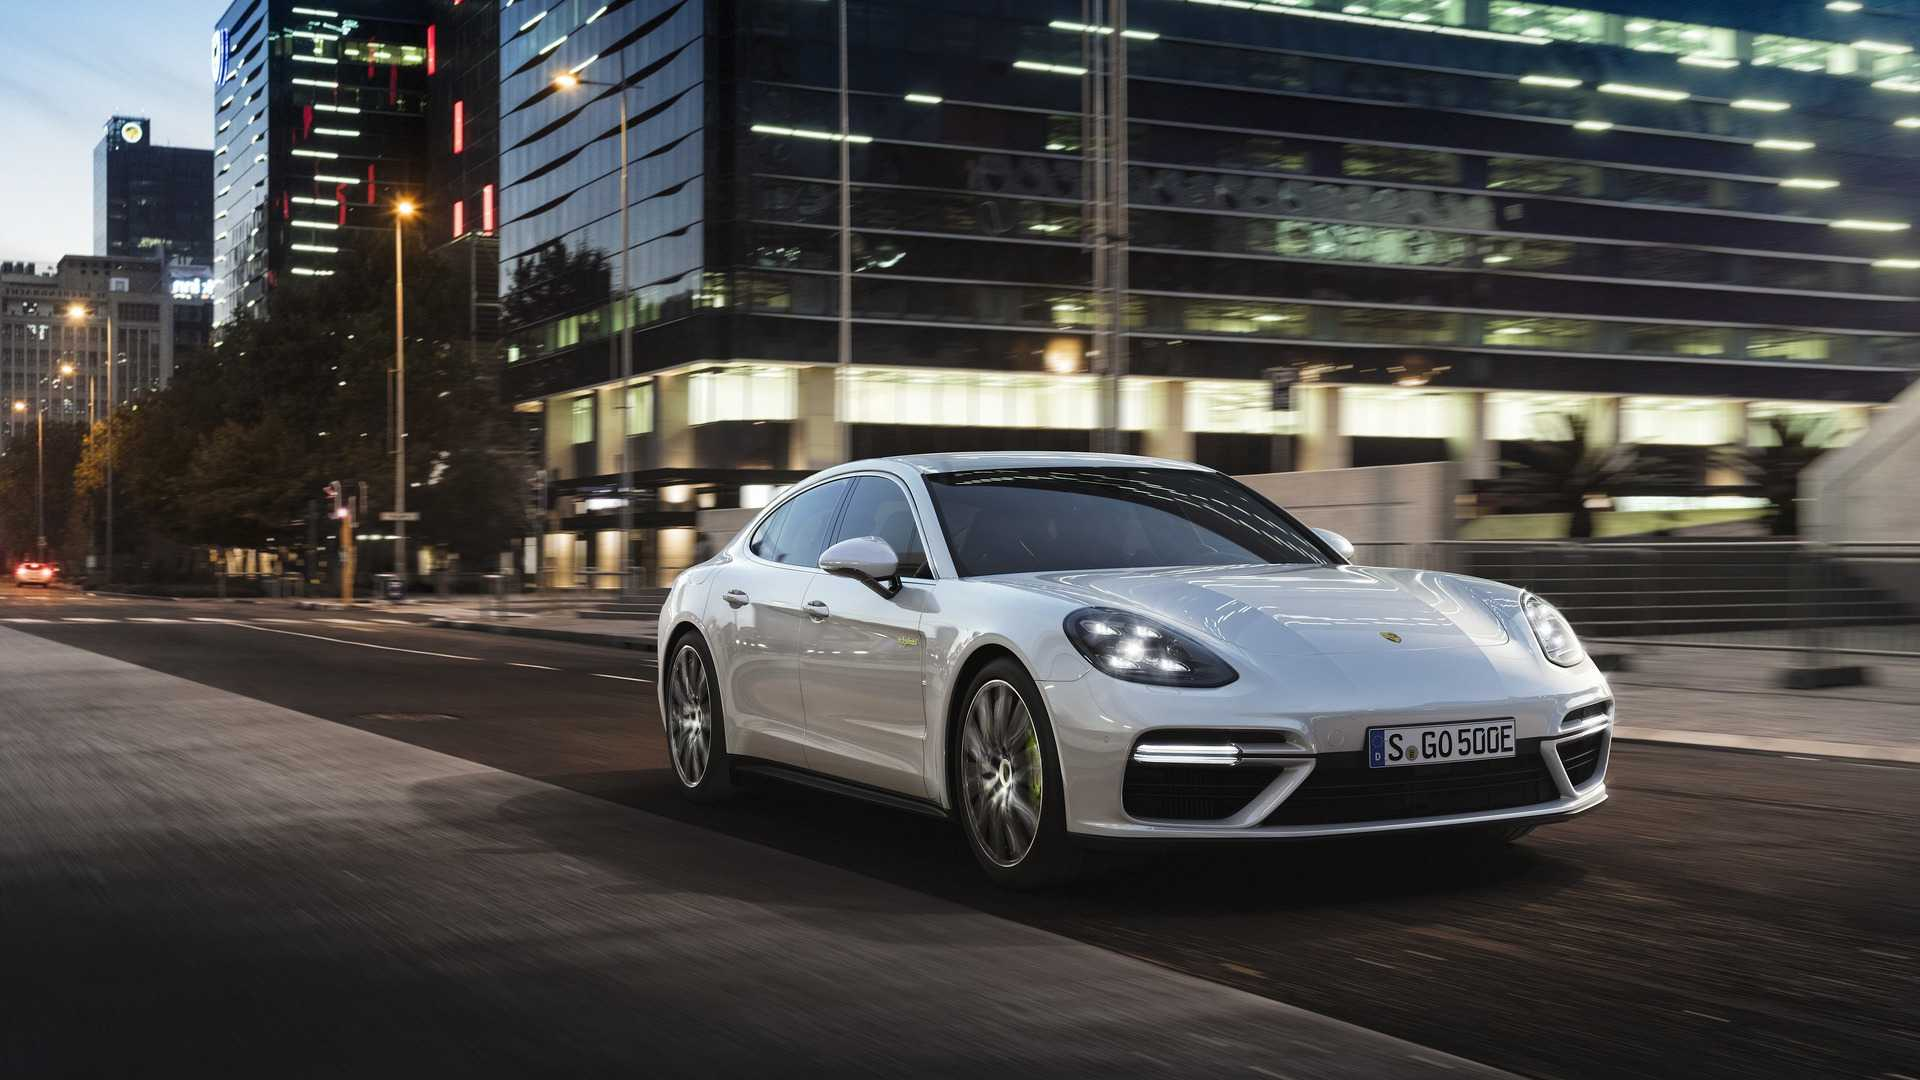 2018 Porsche Panamera Turbo S E Hybrid Cranks Out 680 Hp Features 14 1 Kwh Battery